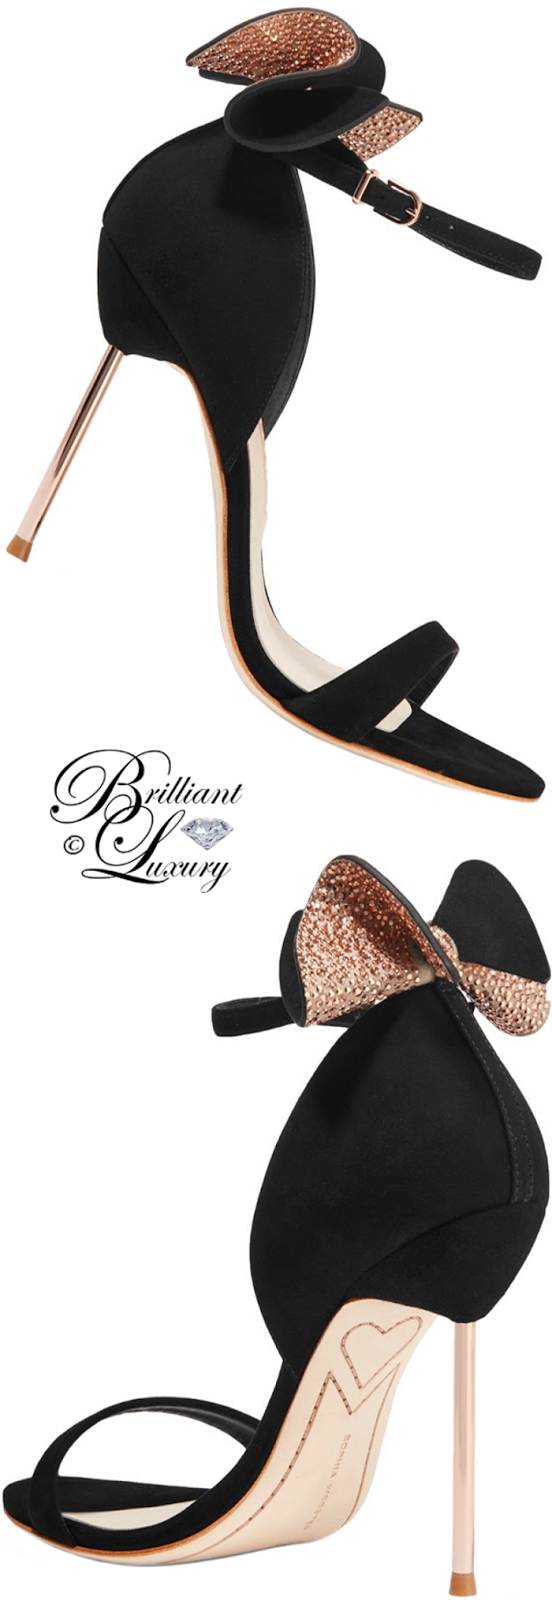 Brilliant Luxury ♦ Sophia Webster Maya Sandal